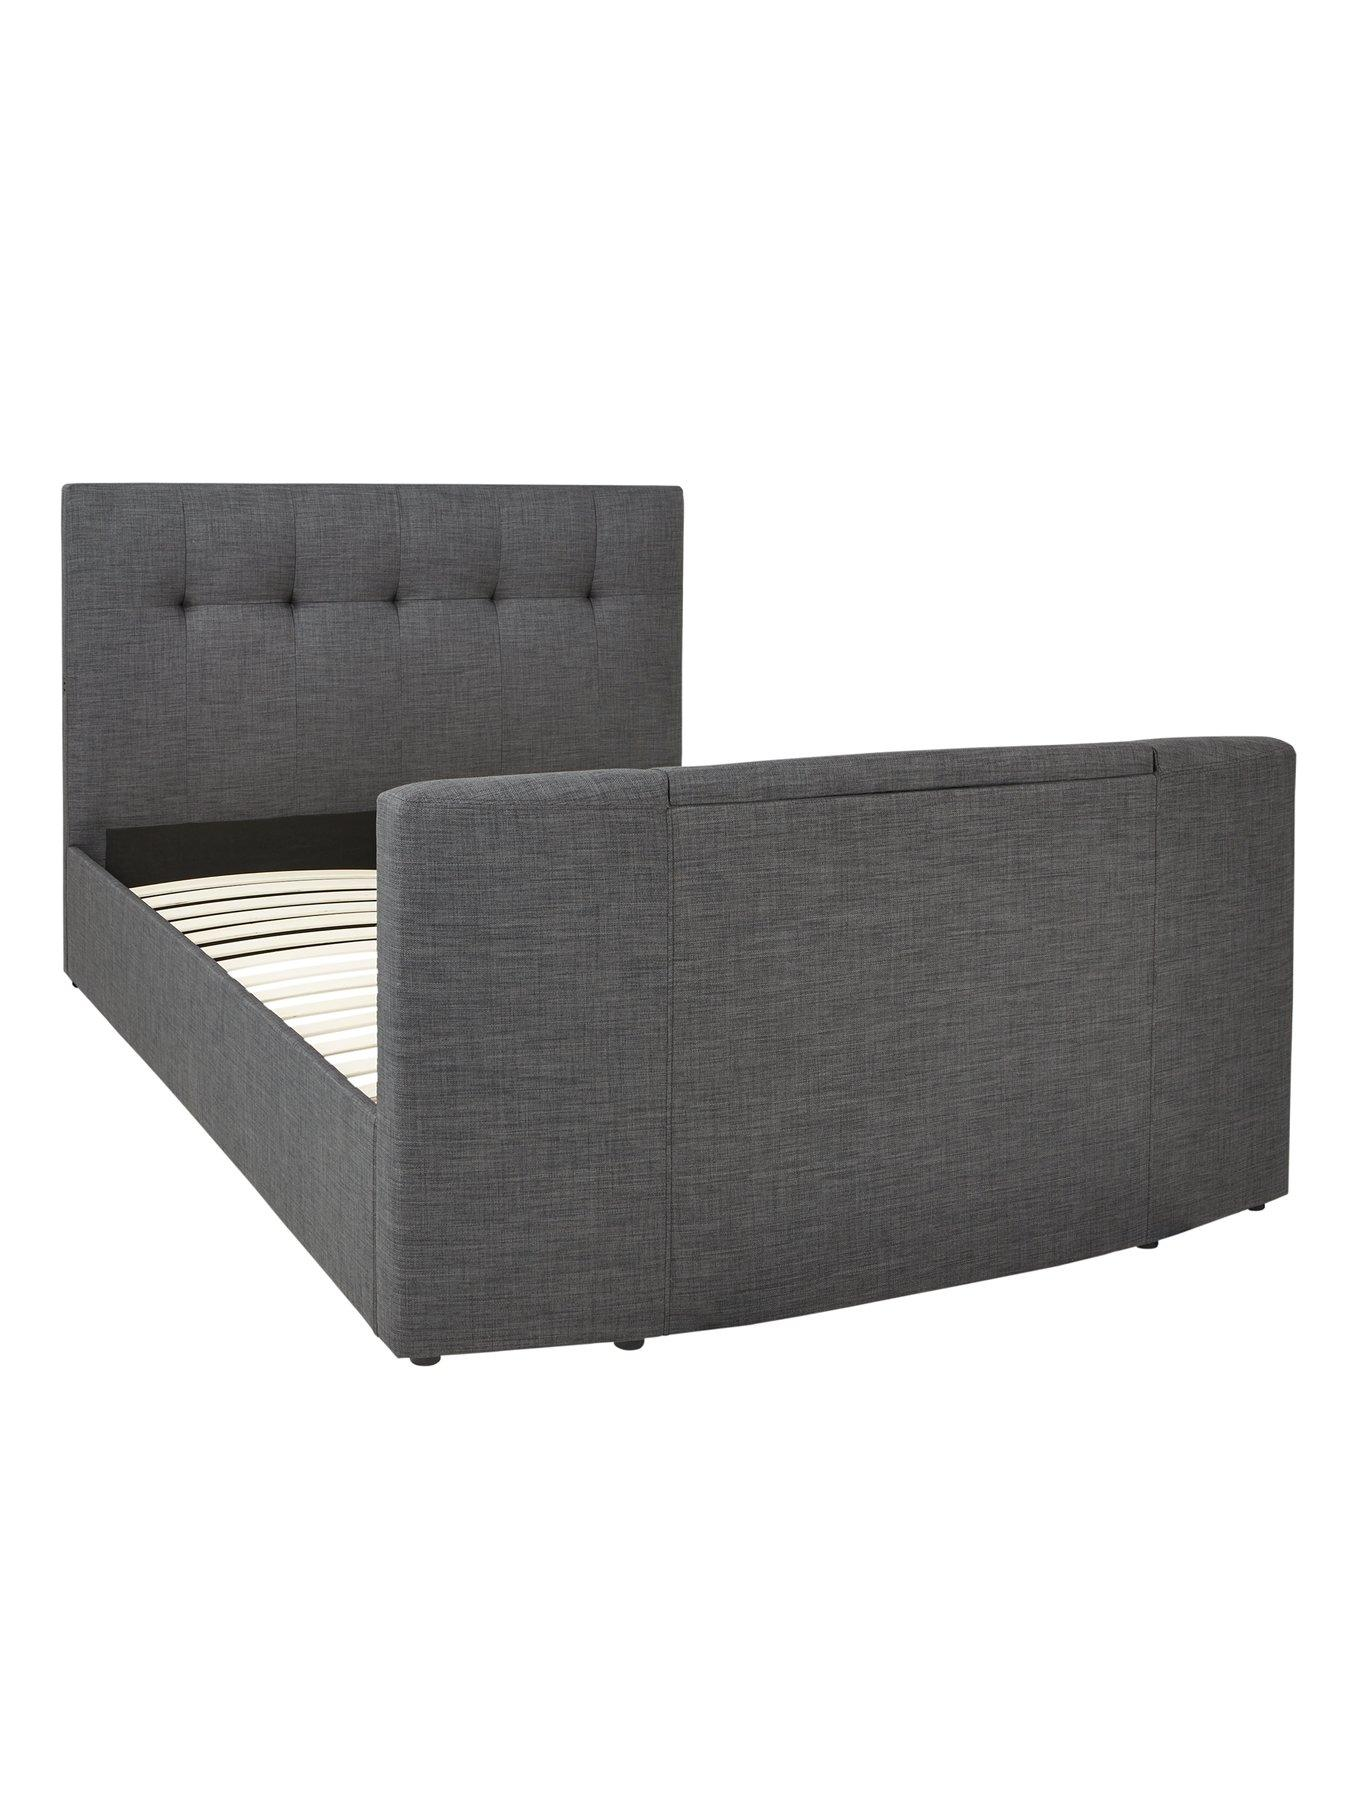 rialto sofa bed baja convert a couch and replacement fabric tv with bluetooth usb charging mattress view larger